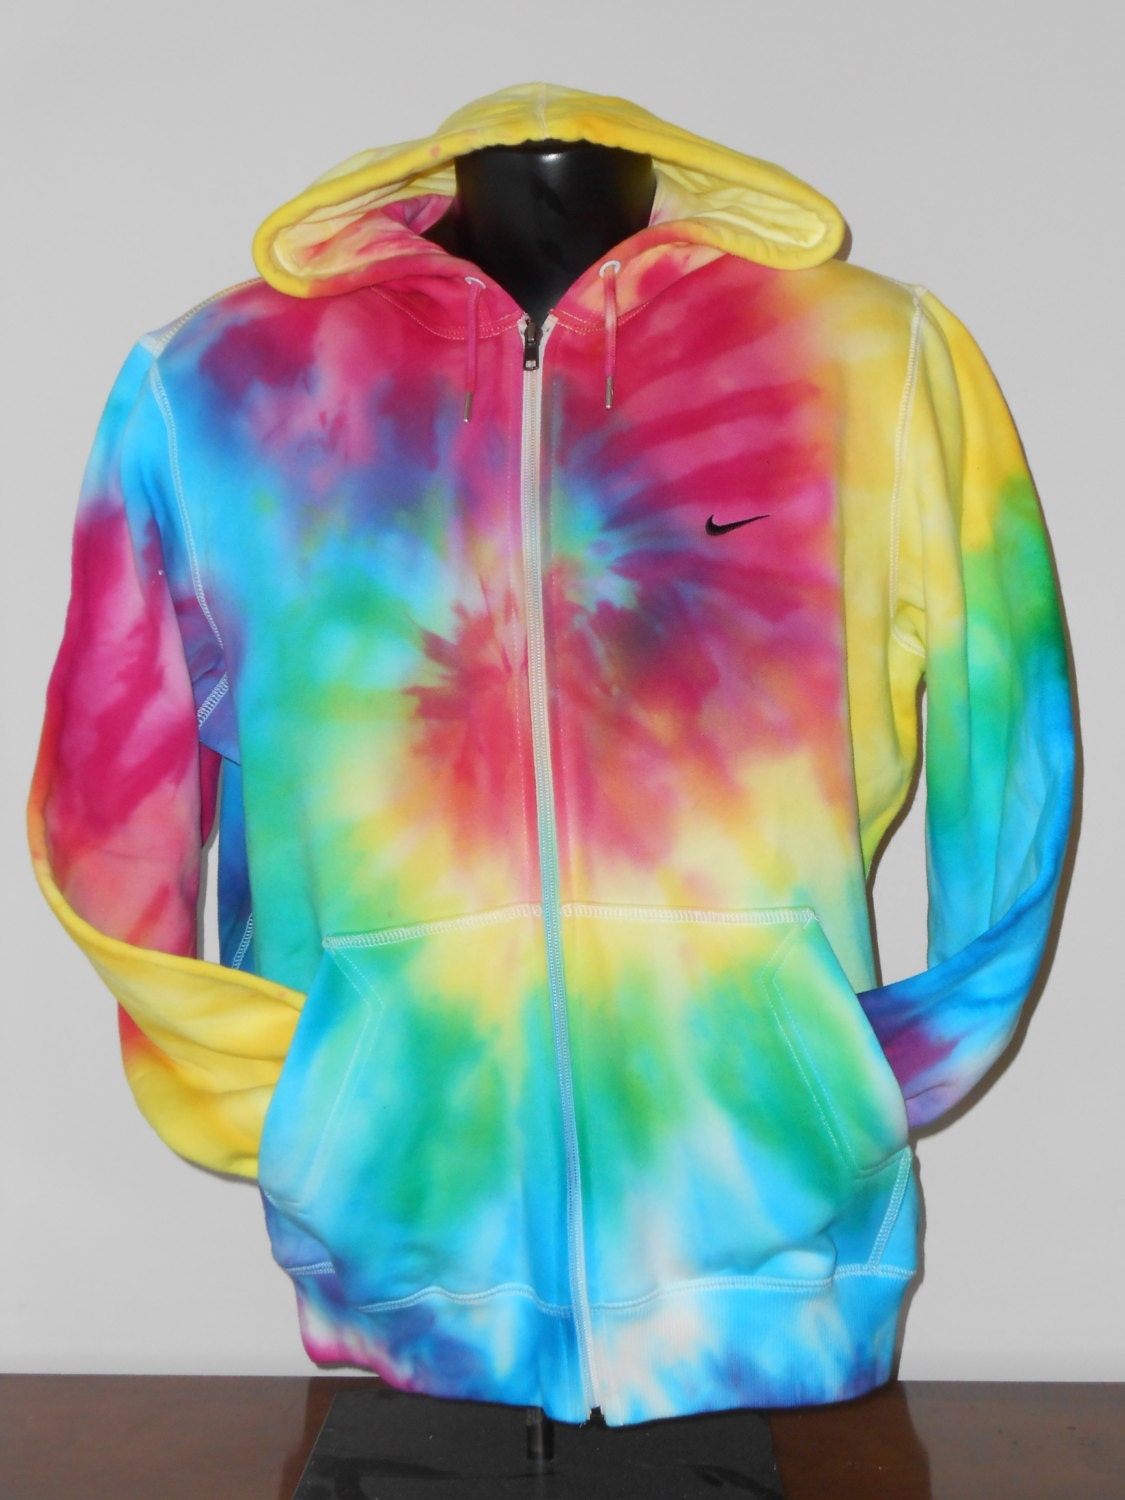 Nike tie dye hoodie for Nike tie dye shirt and shorts